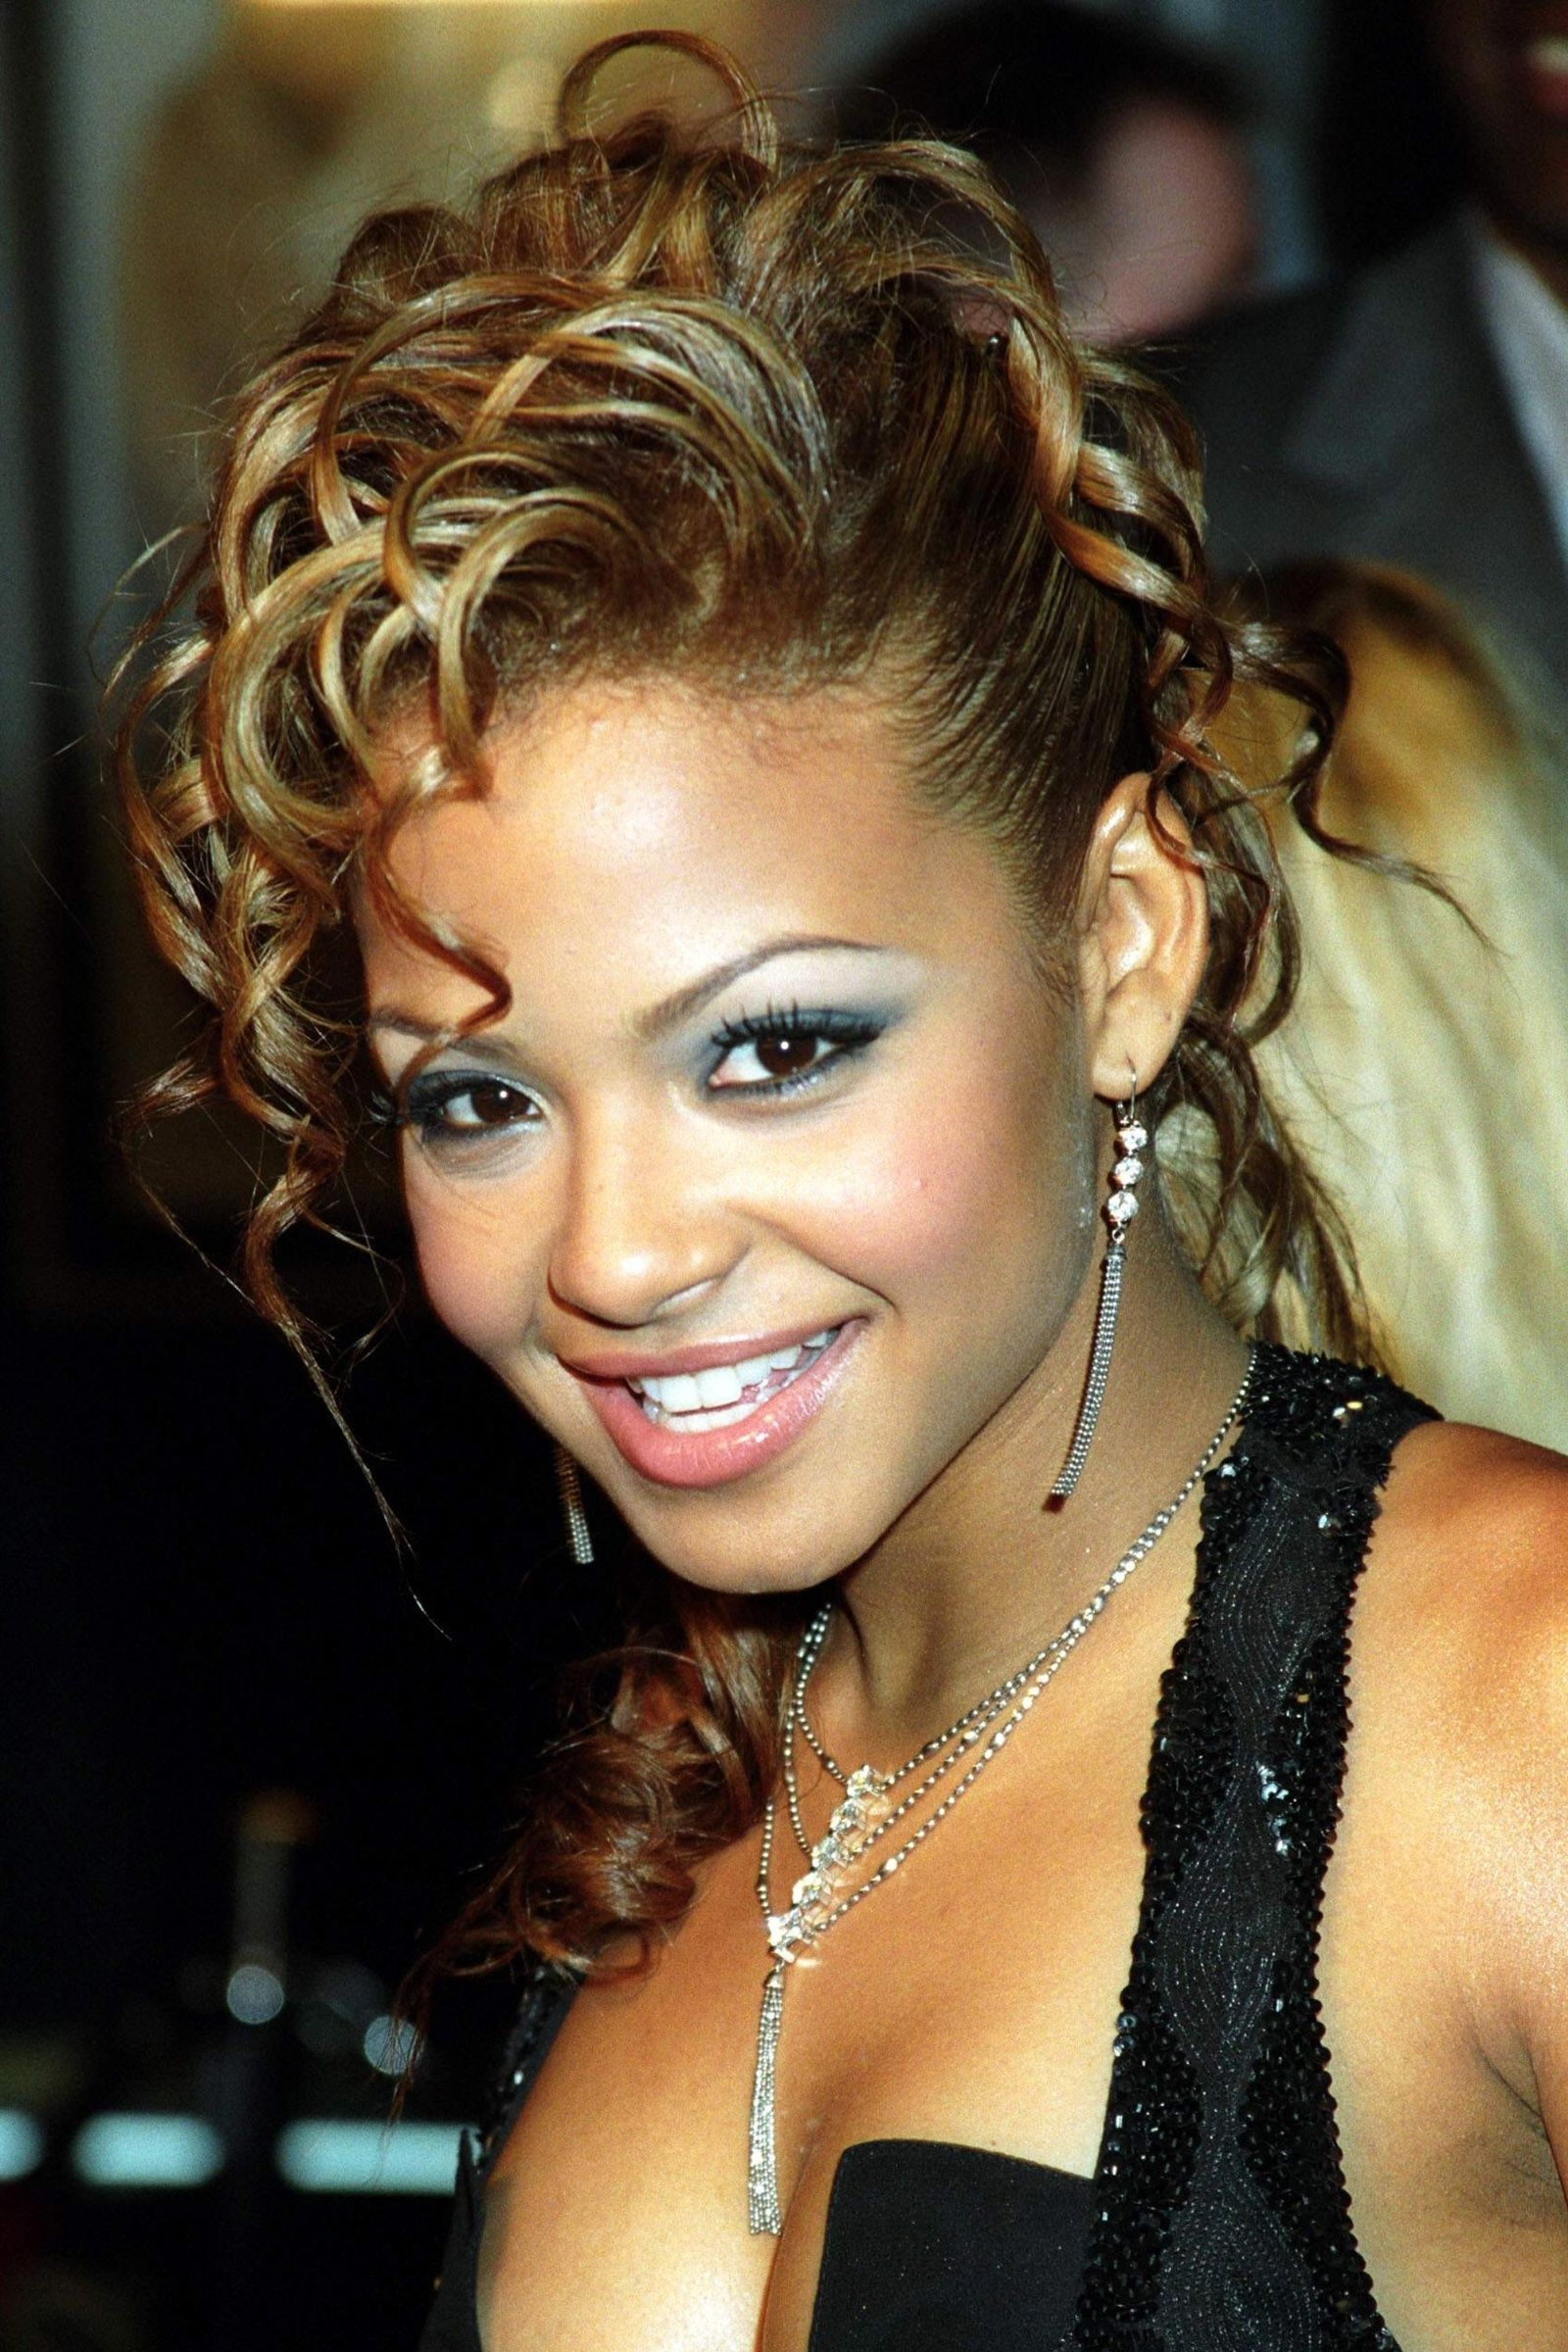 24 Early 2000s Beauty Looks You Were Obsessed With